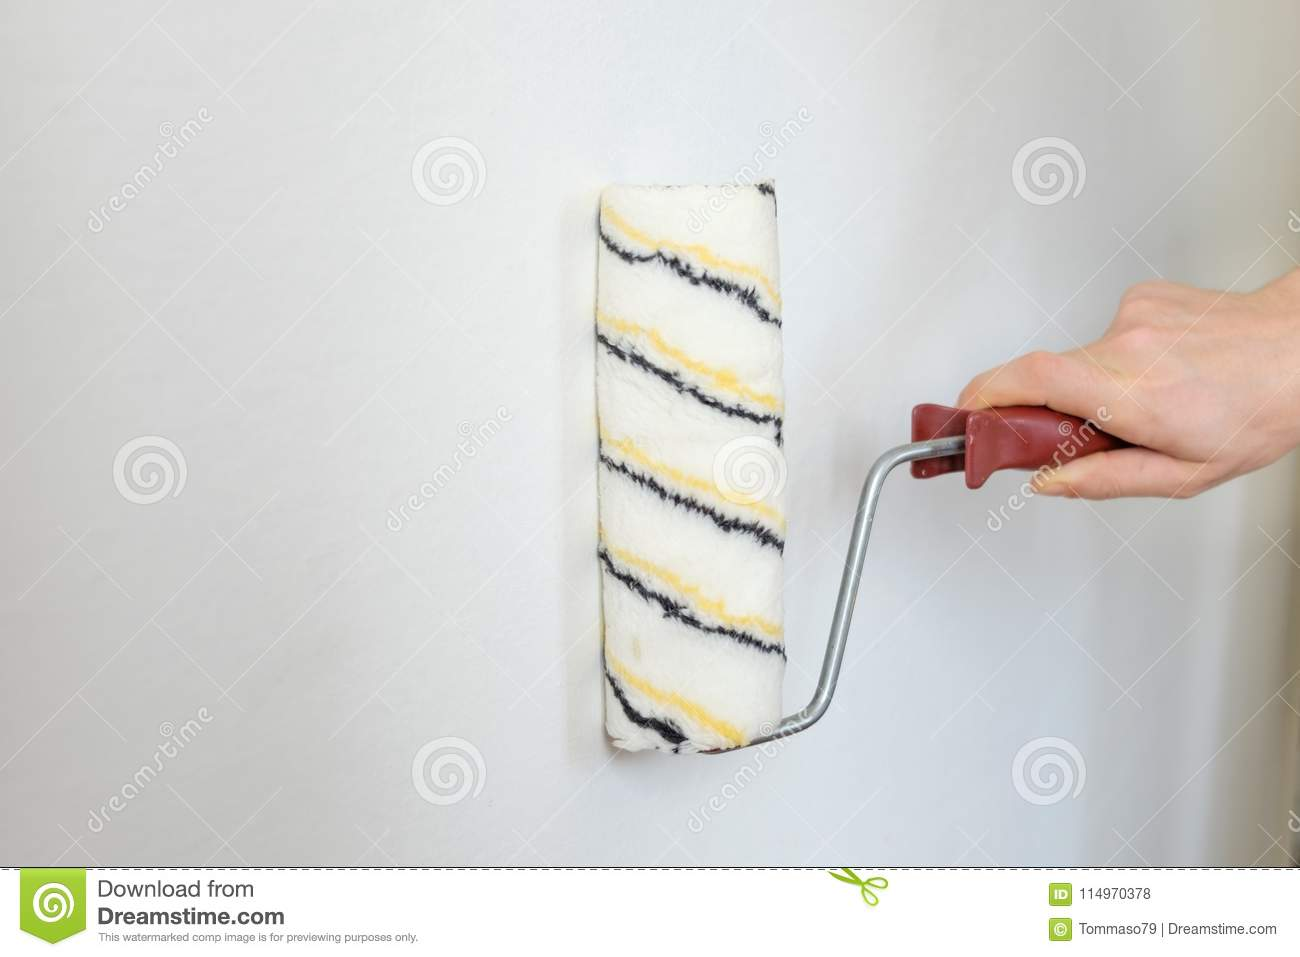 Painting Equipment Tools On A White Wall Stock Photo Image Of